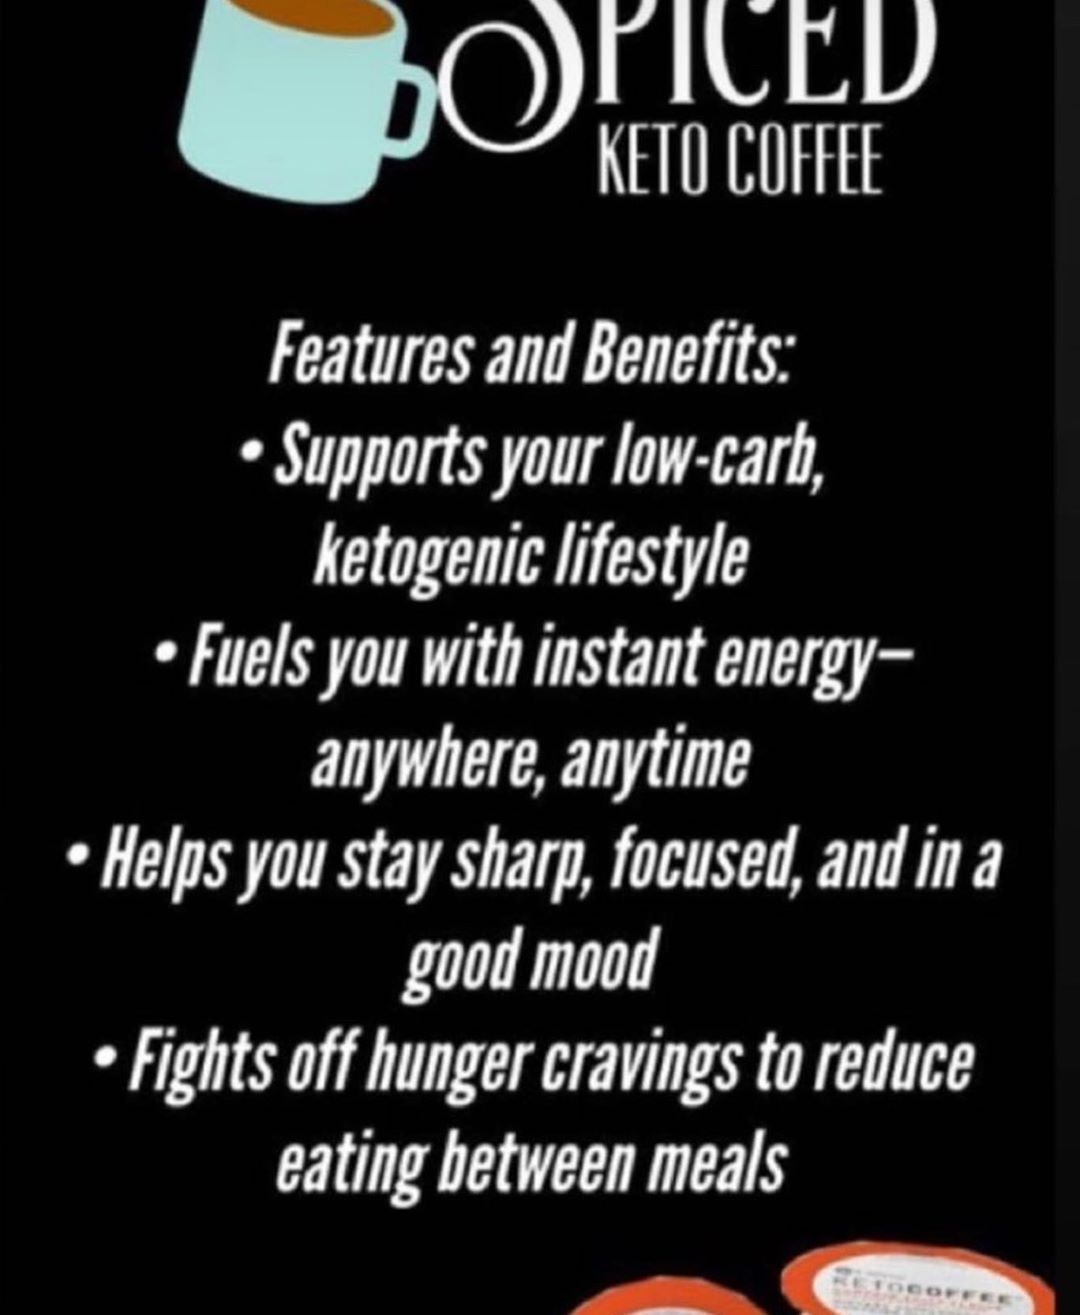 Pumpkin  Spice Keto Coffee  morning ... #pumpkinspiceketocoffee Pumpkin  Spice Keto Coffee  morning ... #pumpkinspiceketocoffee Pumpkin  Spice Keto Coffee  morning ... #pumpkinspiceketocoffee Pumpkin  Spice Keto Coffee  morning ... #pumpkinspiceketocoffee